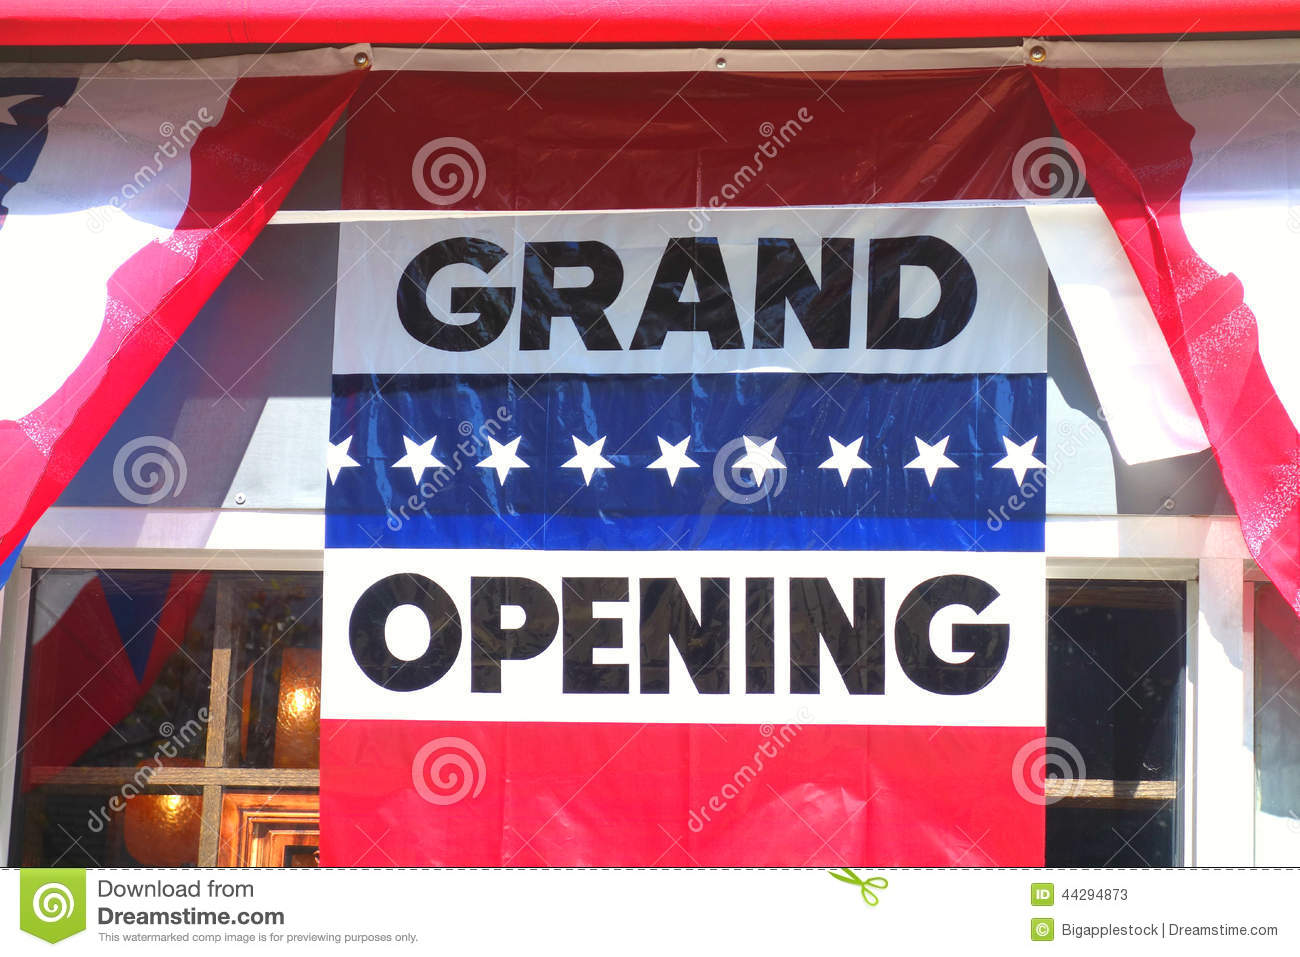 New york forex opening time